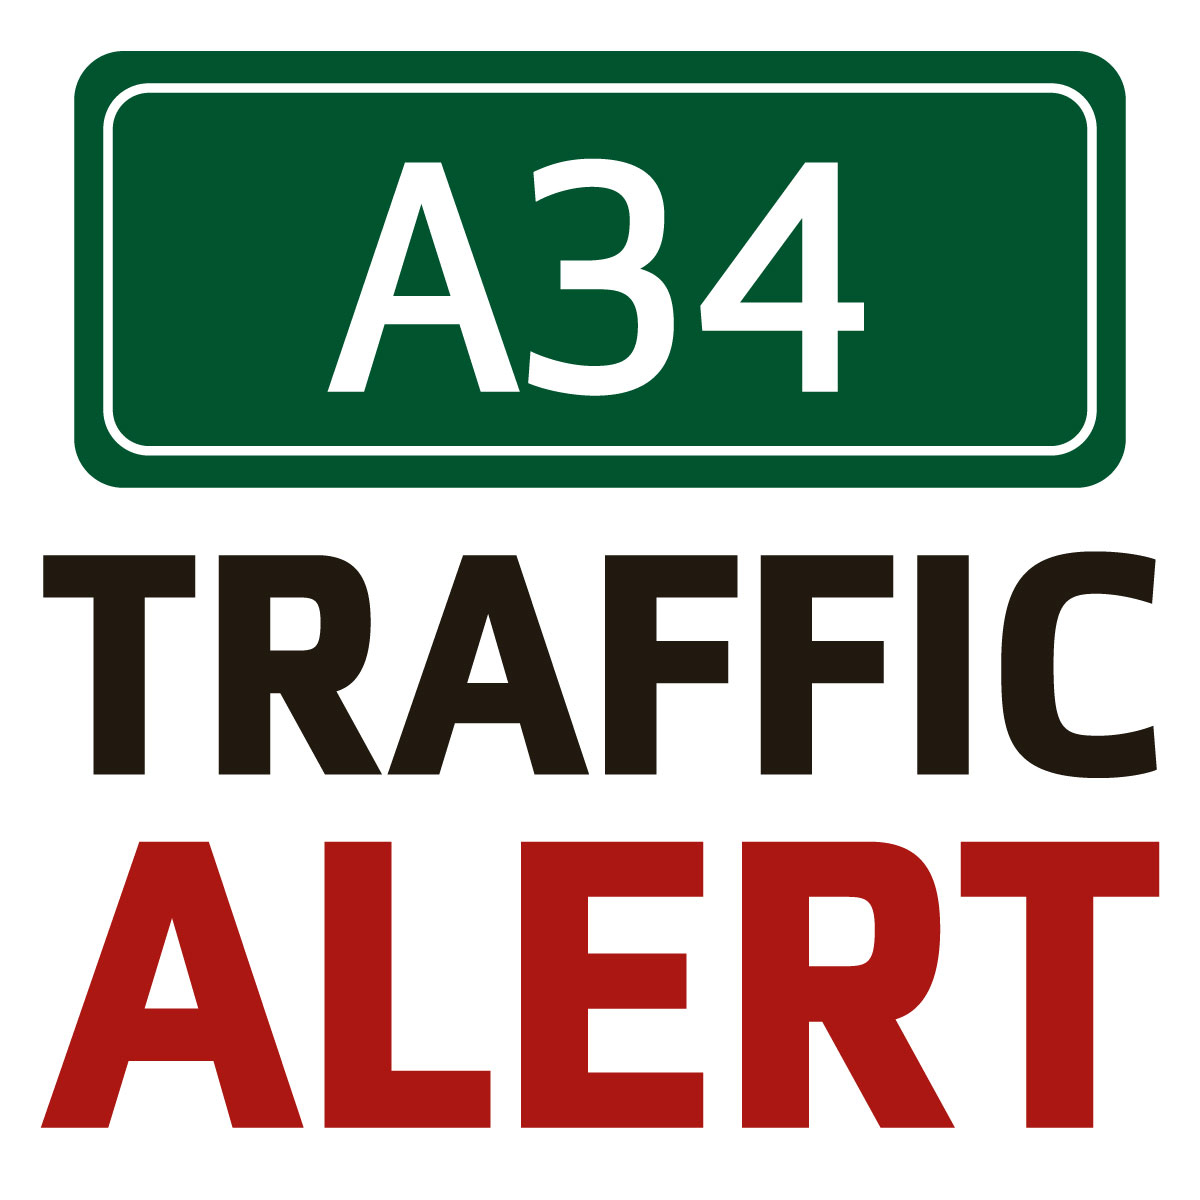 A34 delays after two-vehicle crash